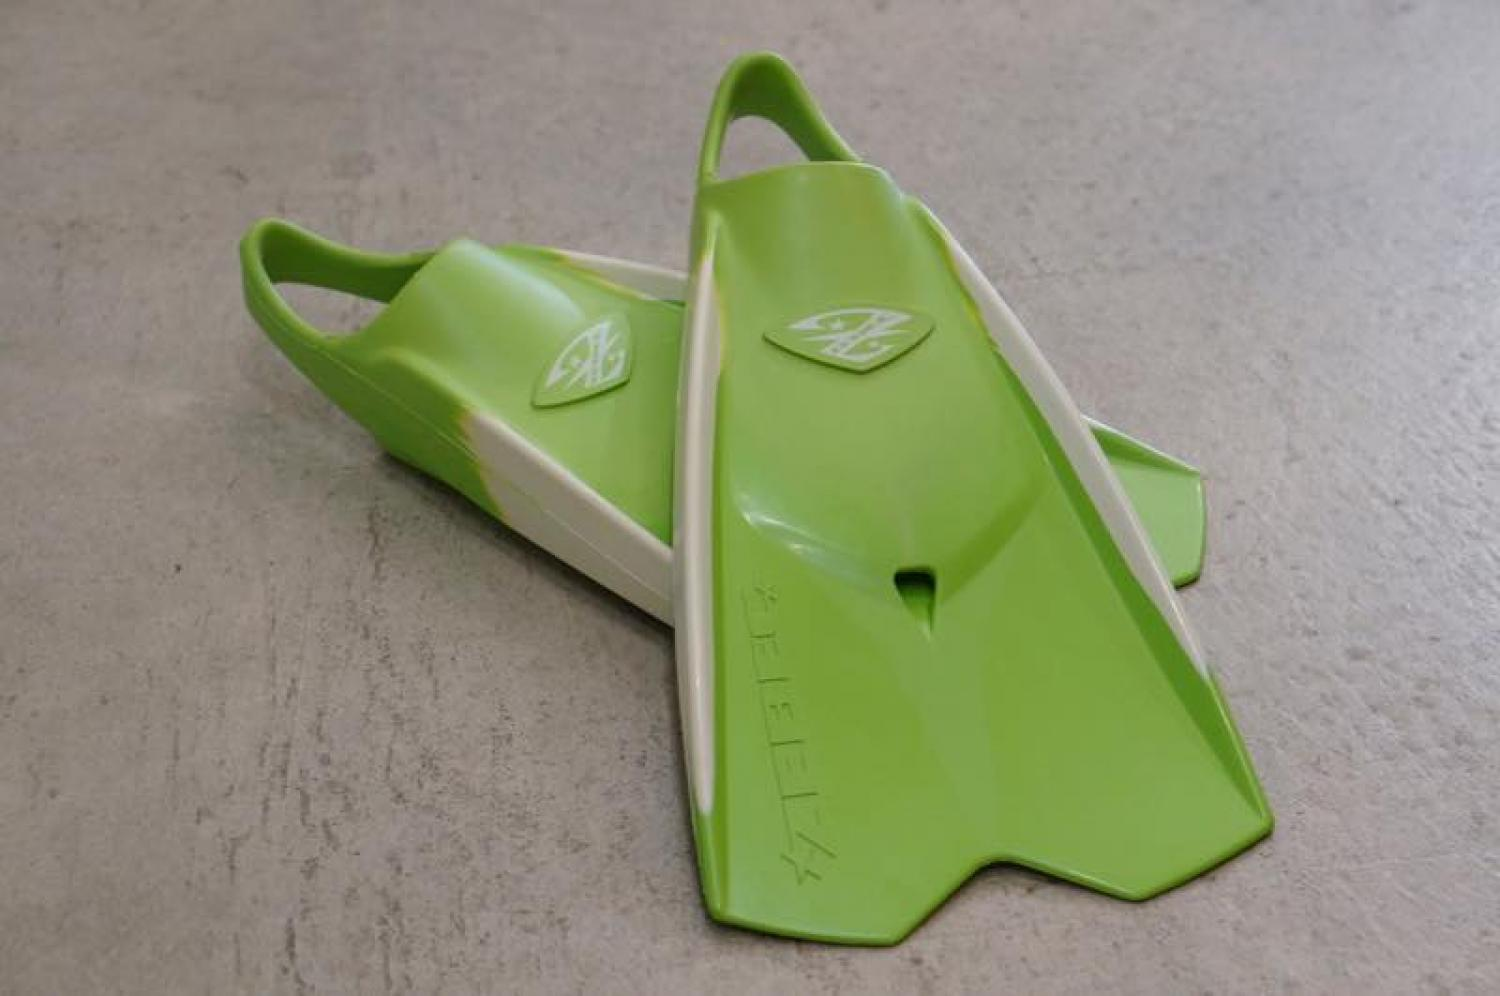 ZWBEC BODY BOARD lime white S